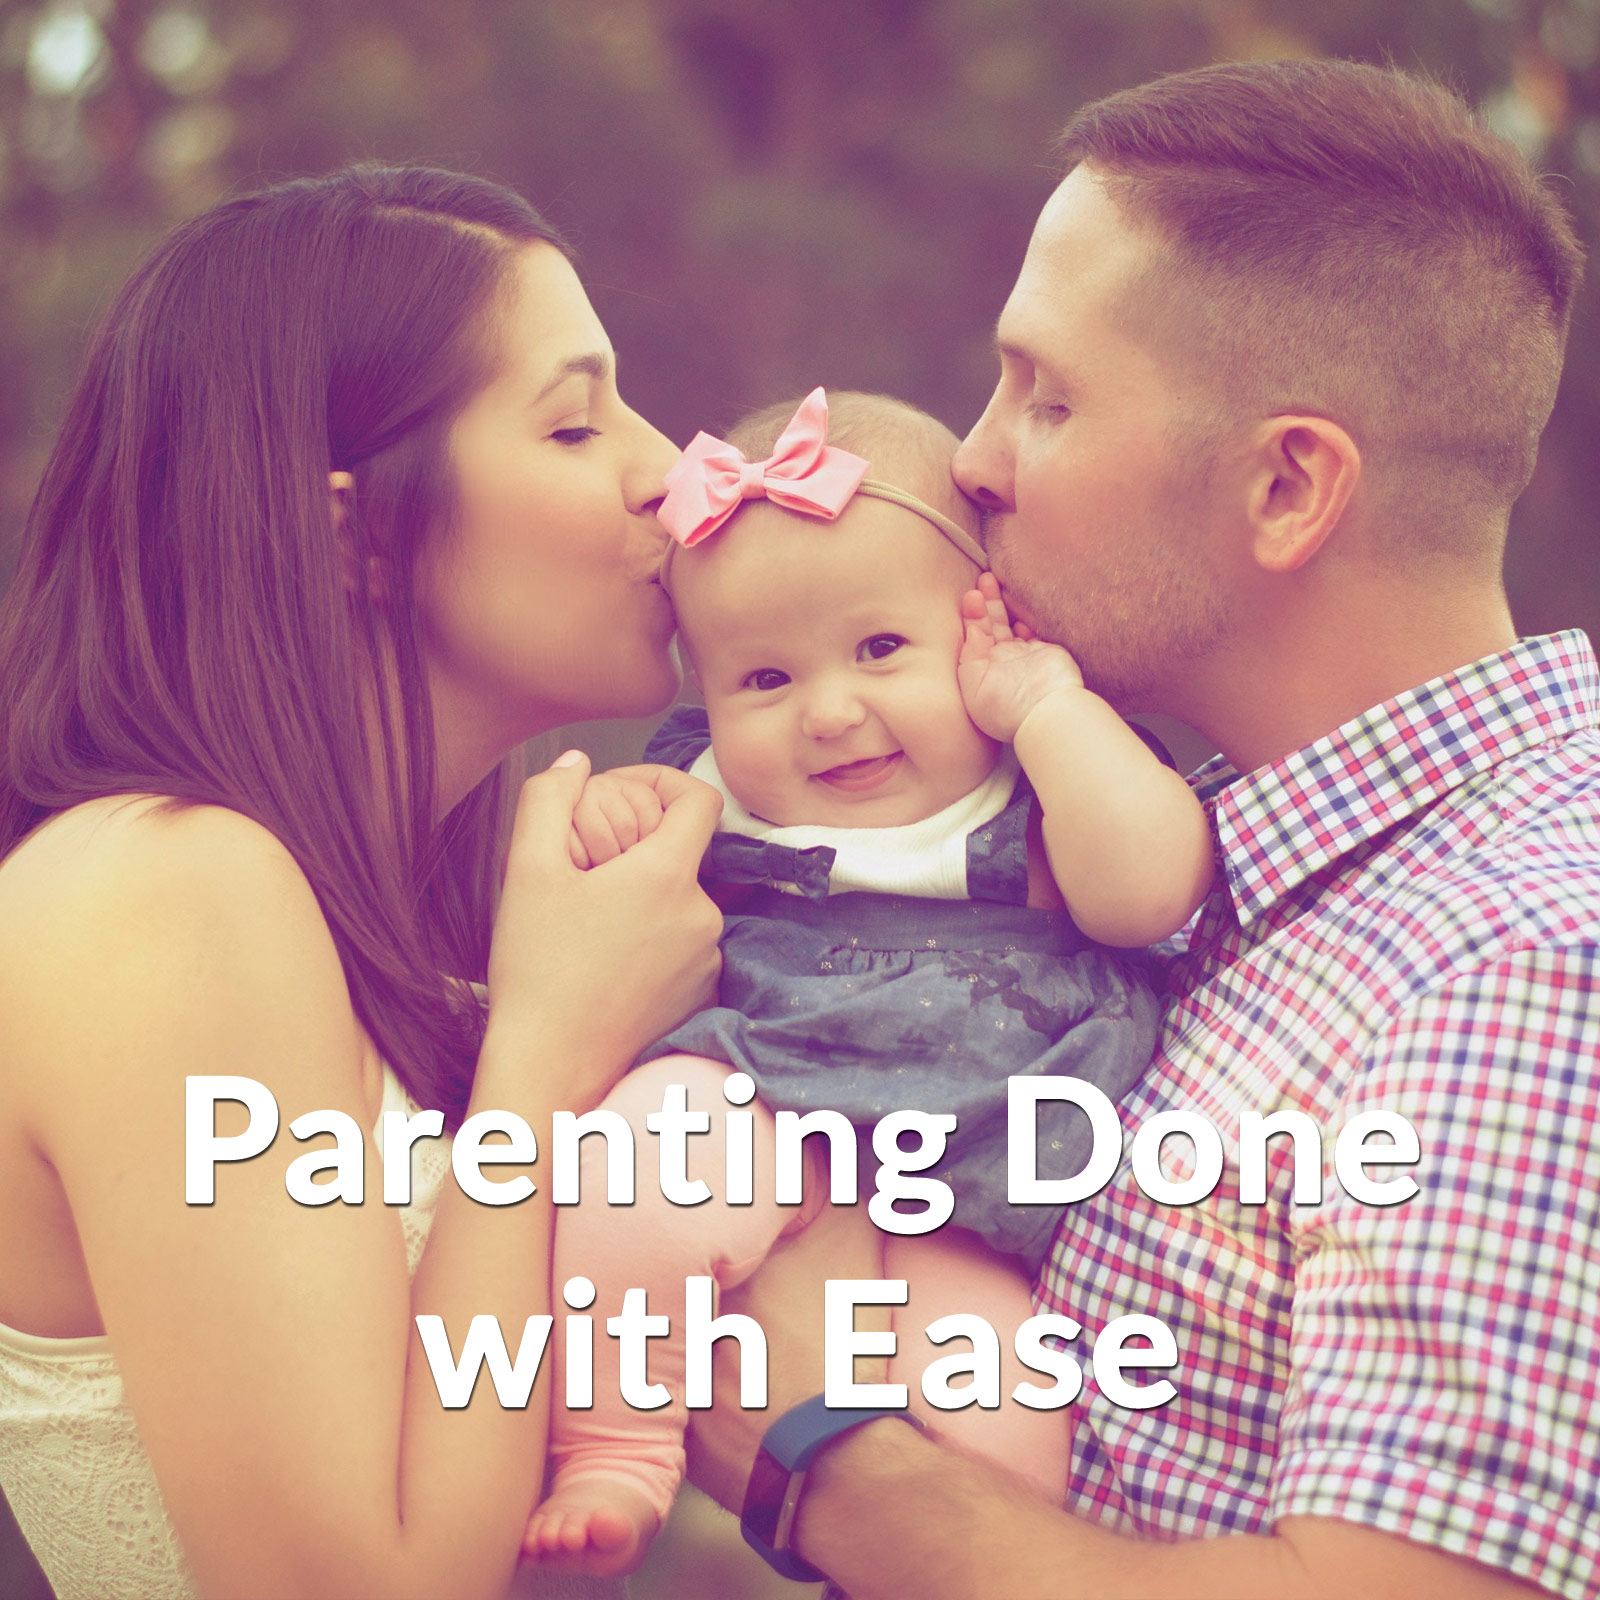 Parenting Done with Ease [Rebroadcast]